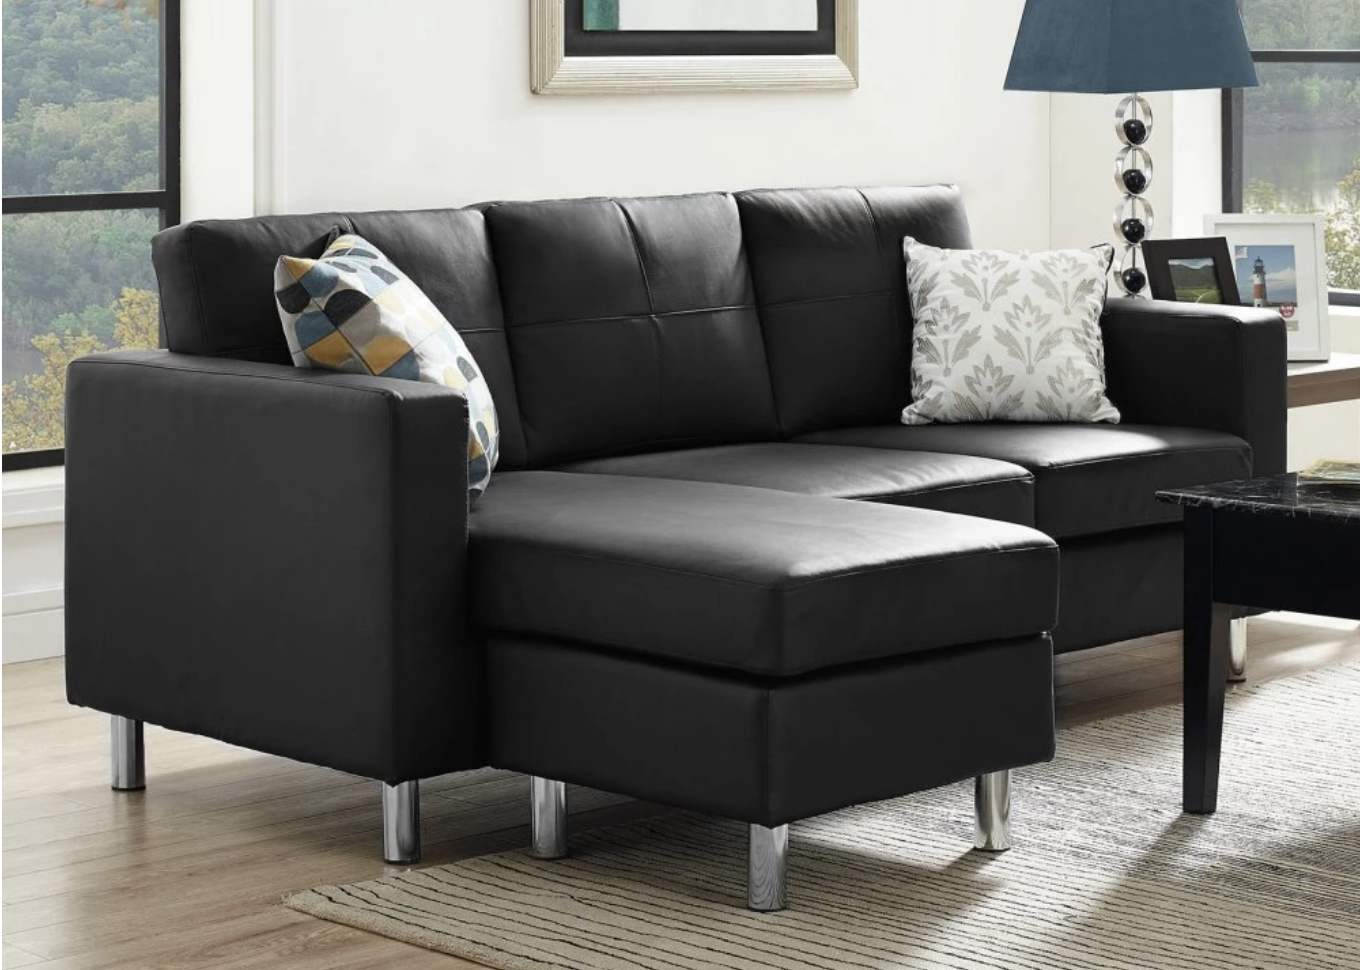 75 Modern Sectional Sofas For Small Spaces (2018) With Black Sectional Sofas (Photo 13 of 15)